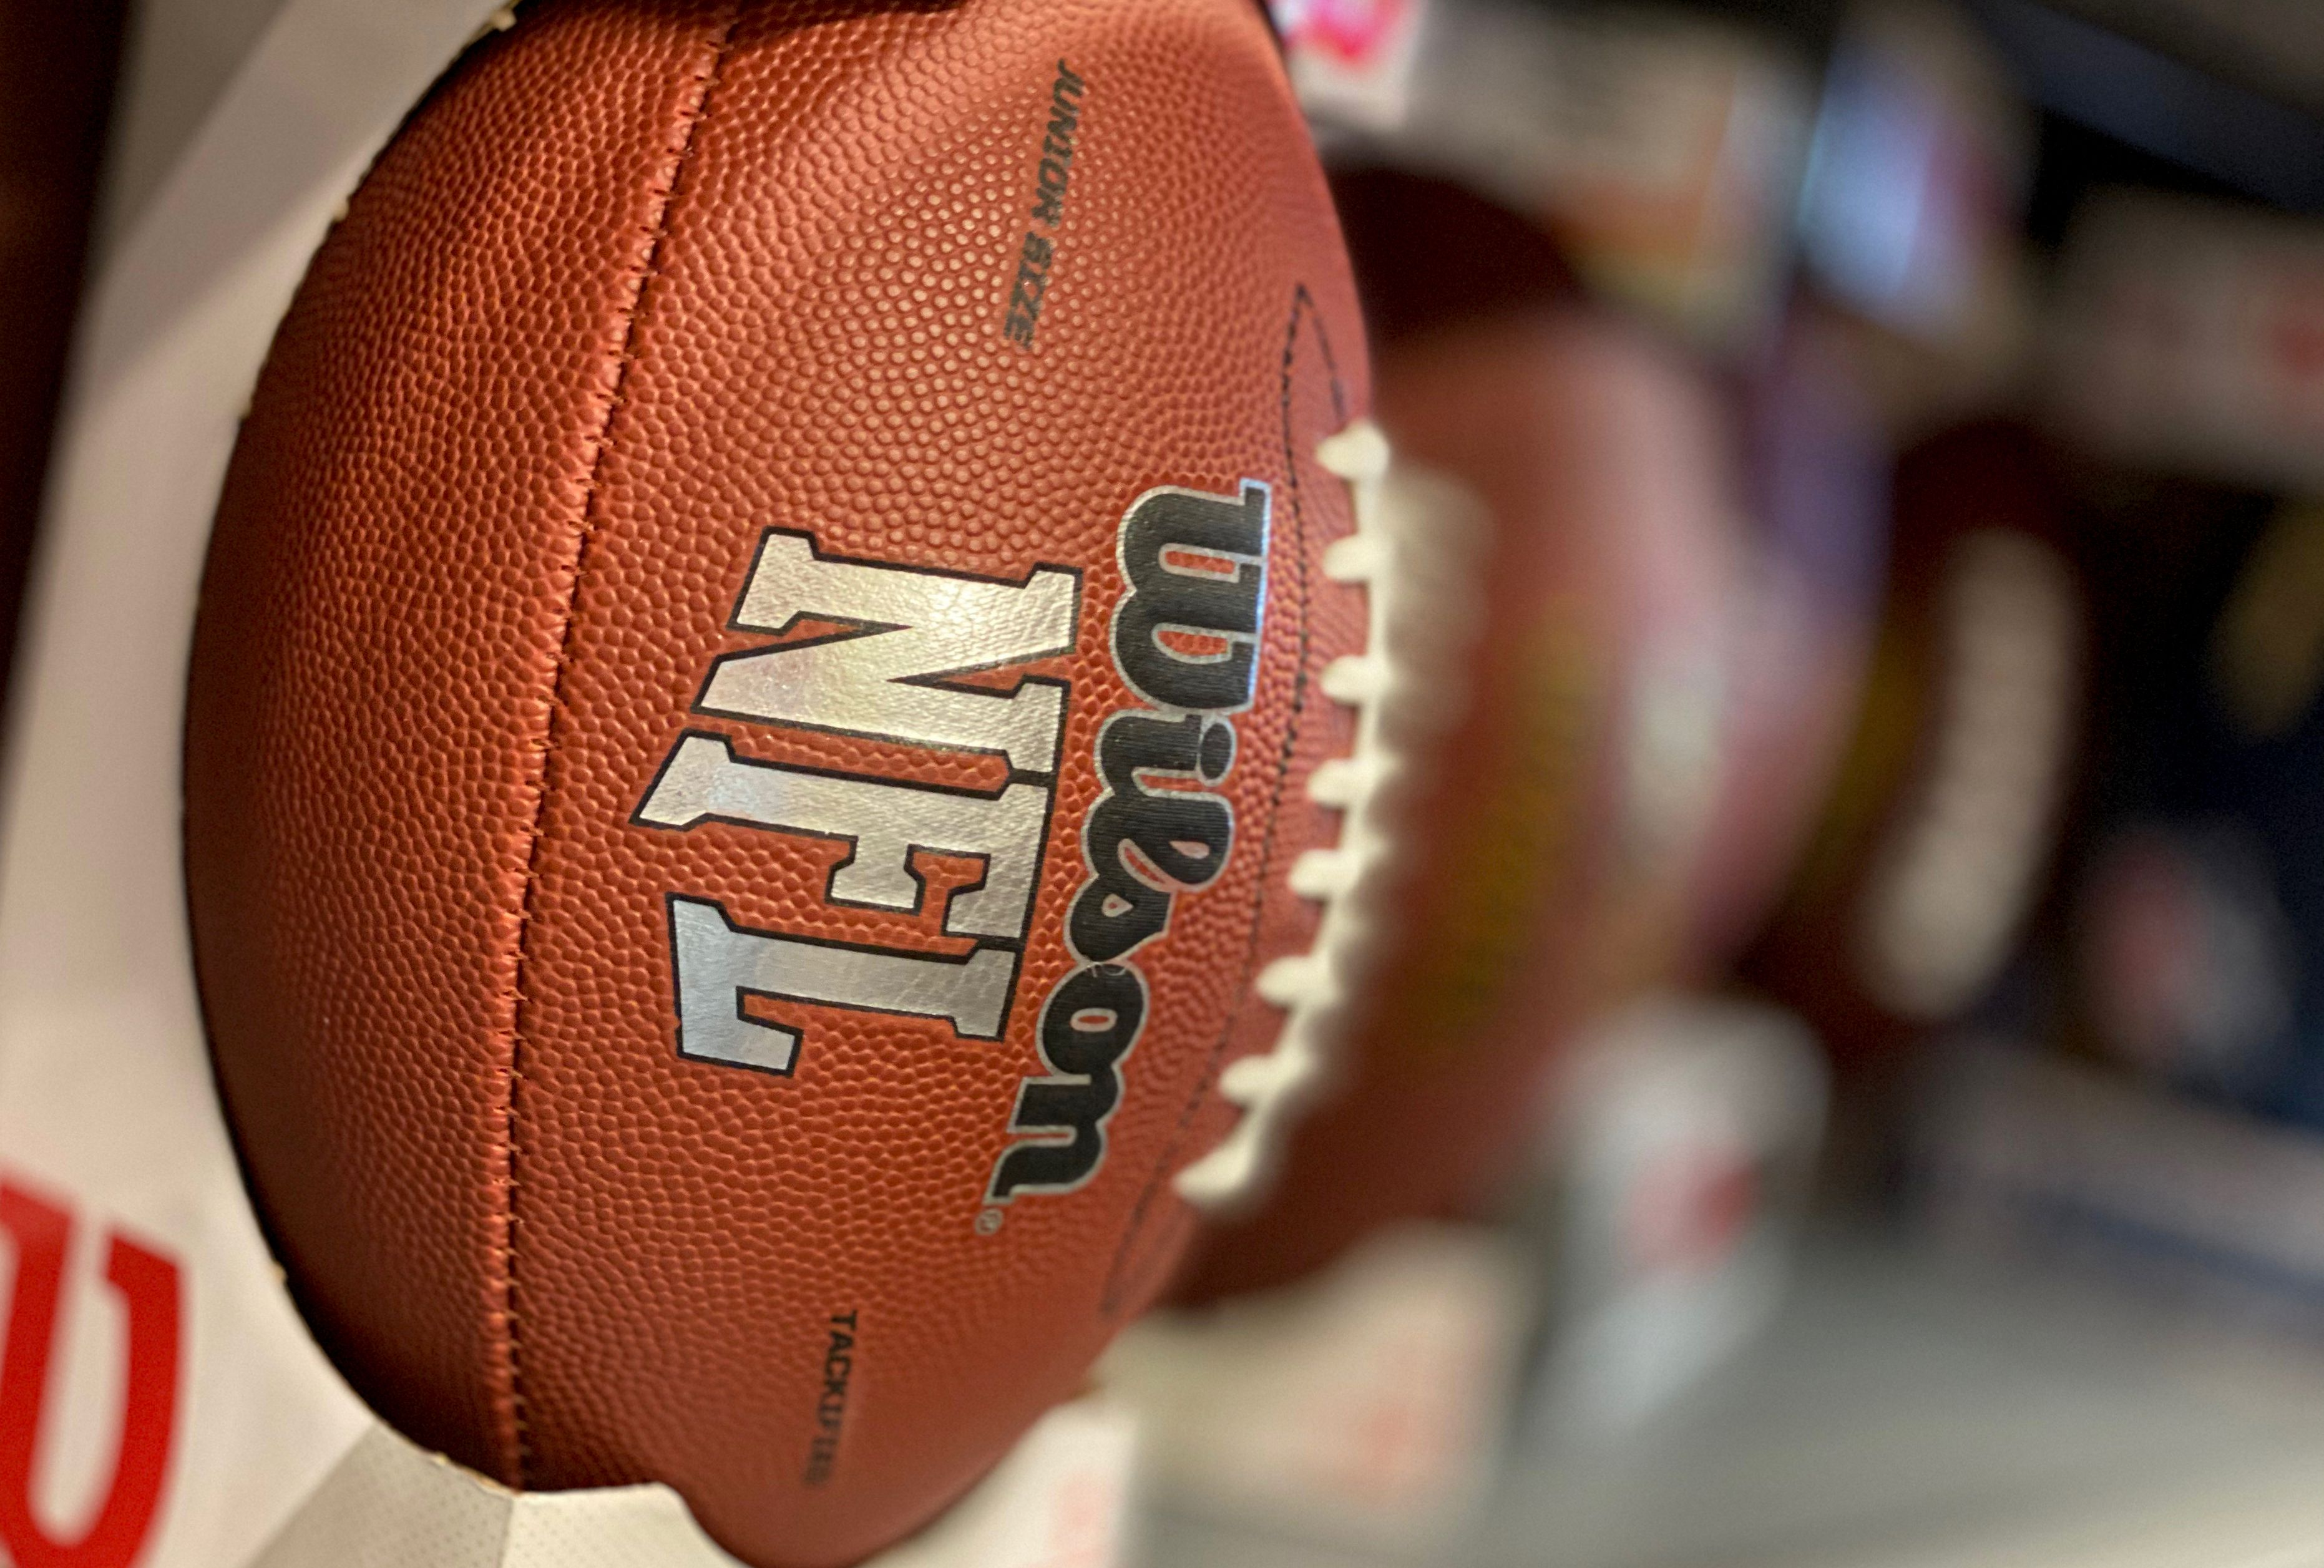 A football is seen displayed in a sports store in Culver City.